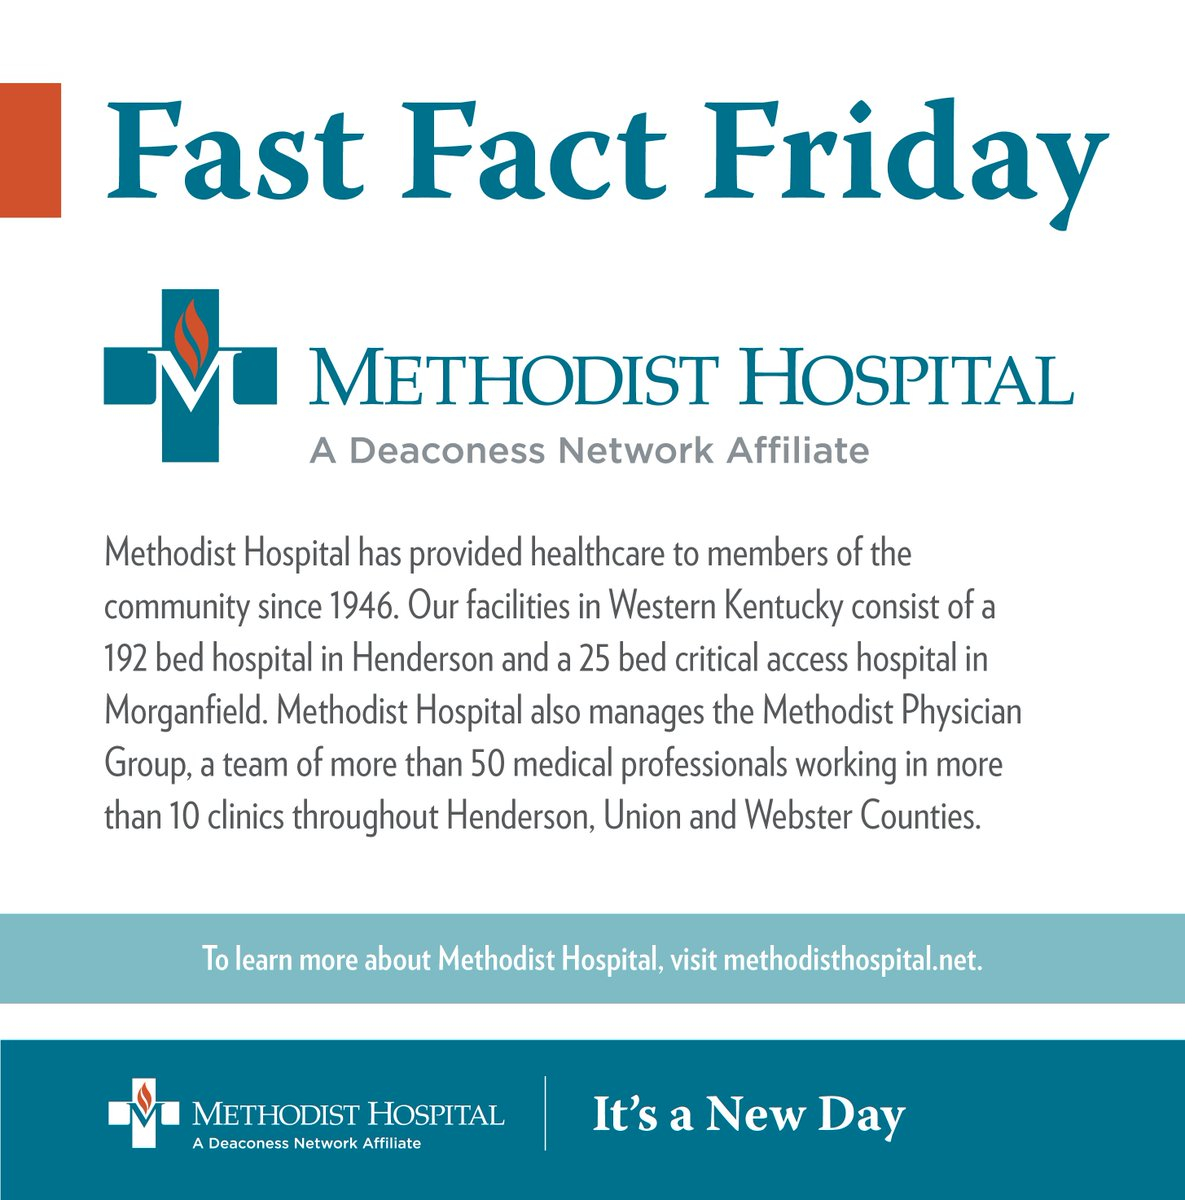 fastfactfriday - Twitter Search